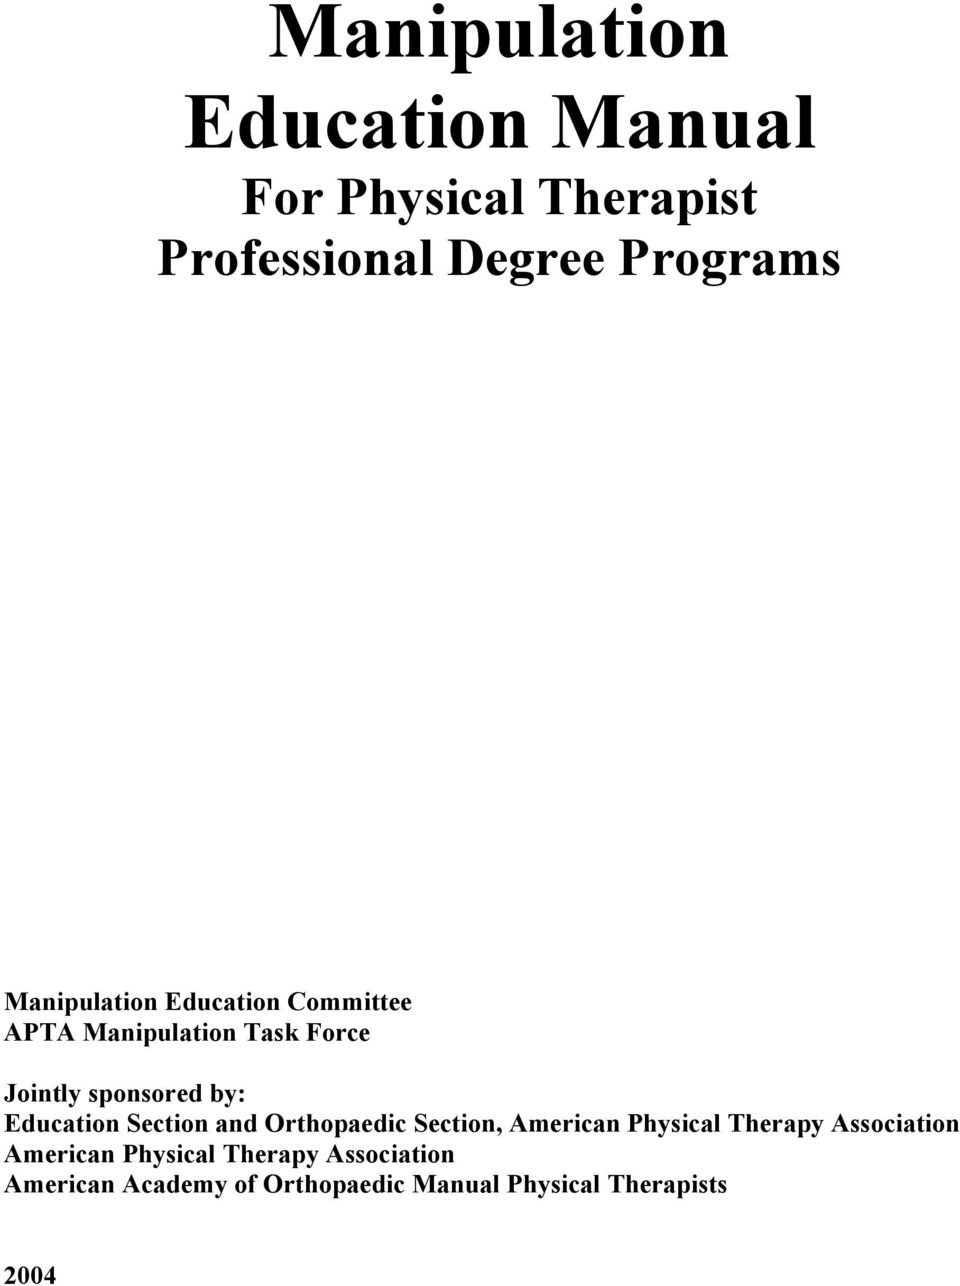 Education Section and Orthopaedic Section, American Physical Therapy Association